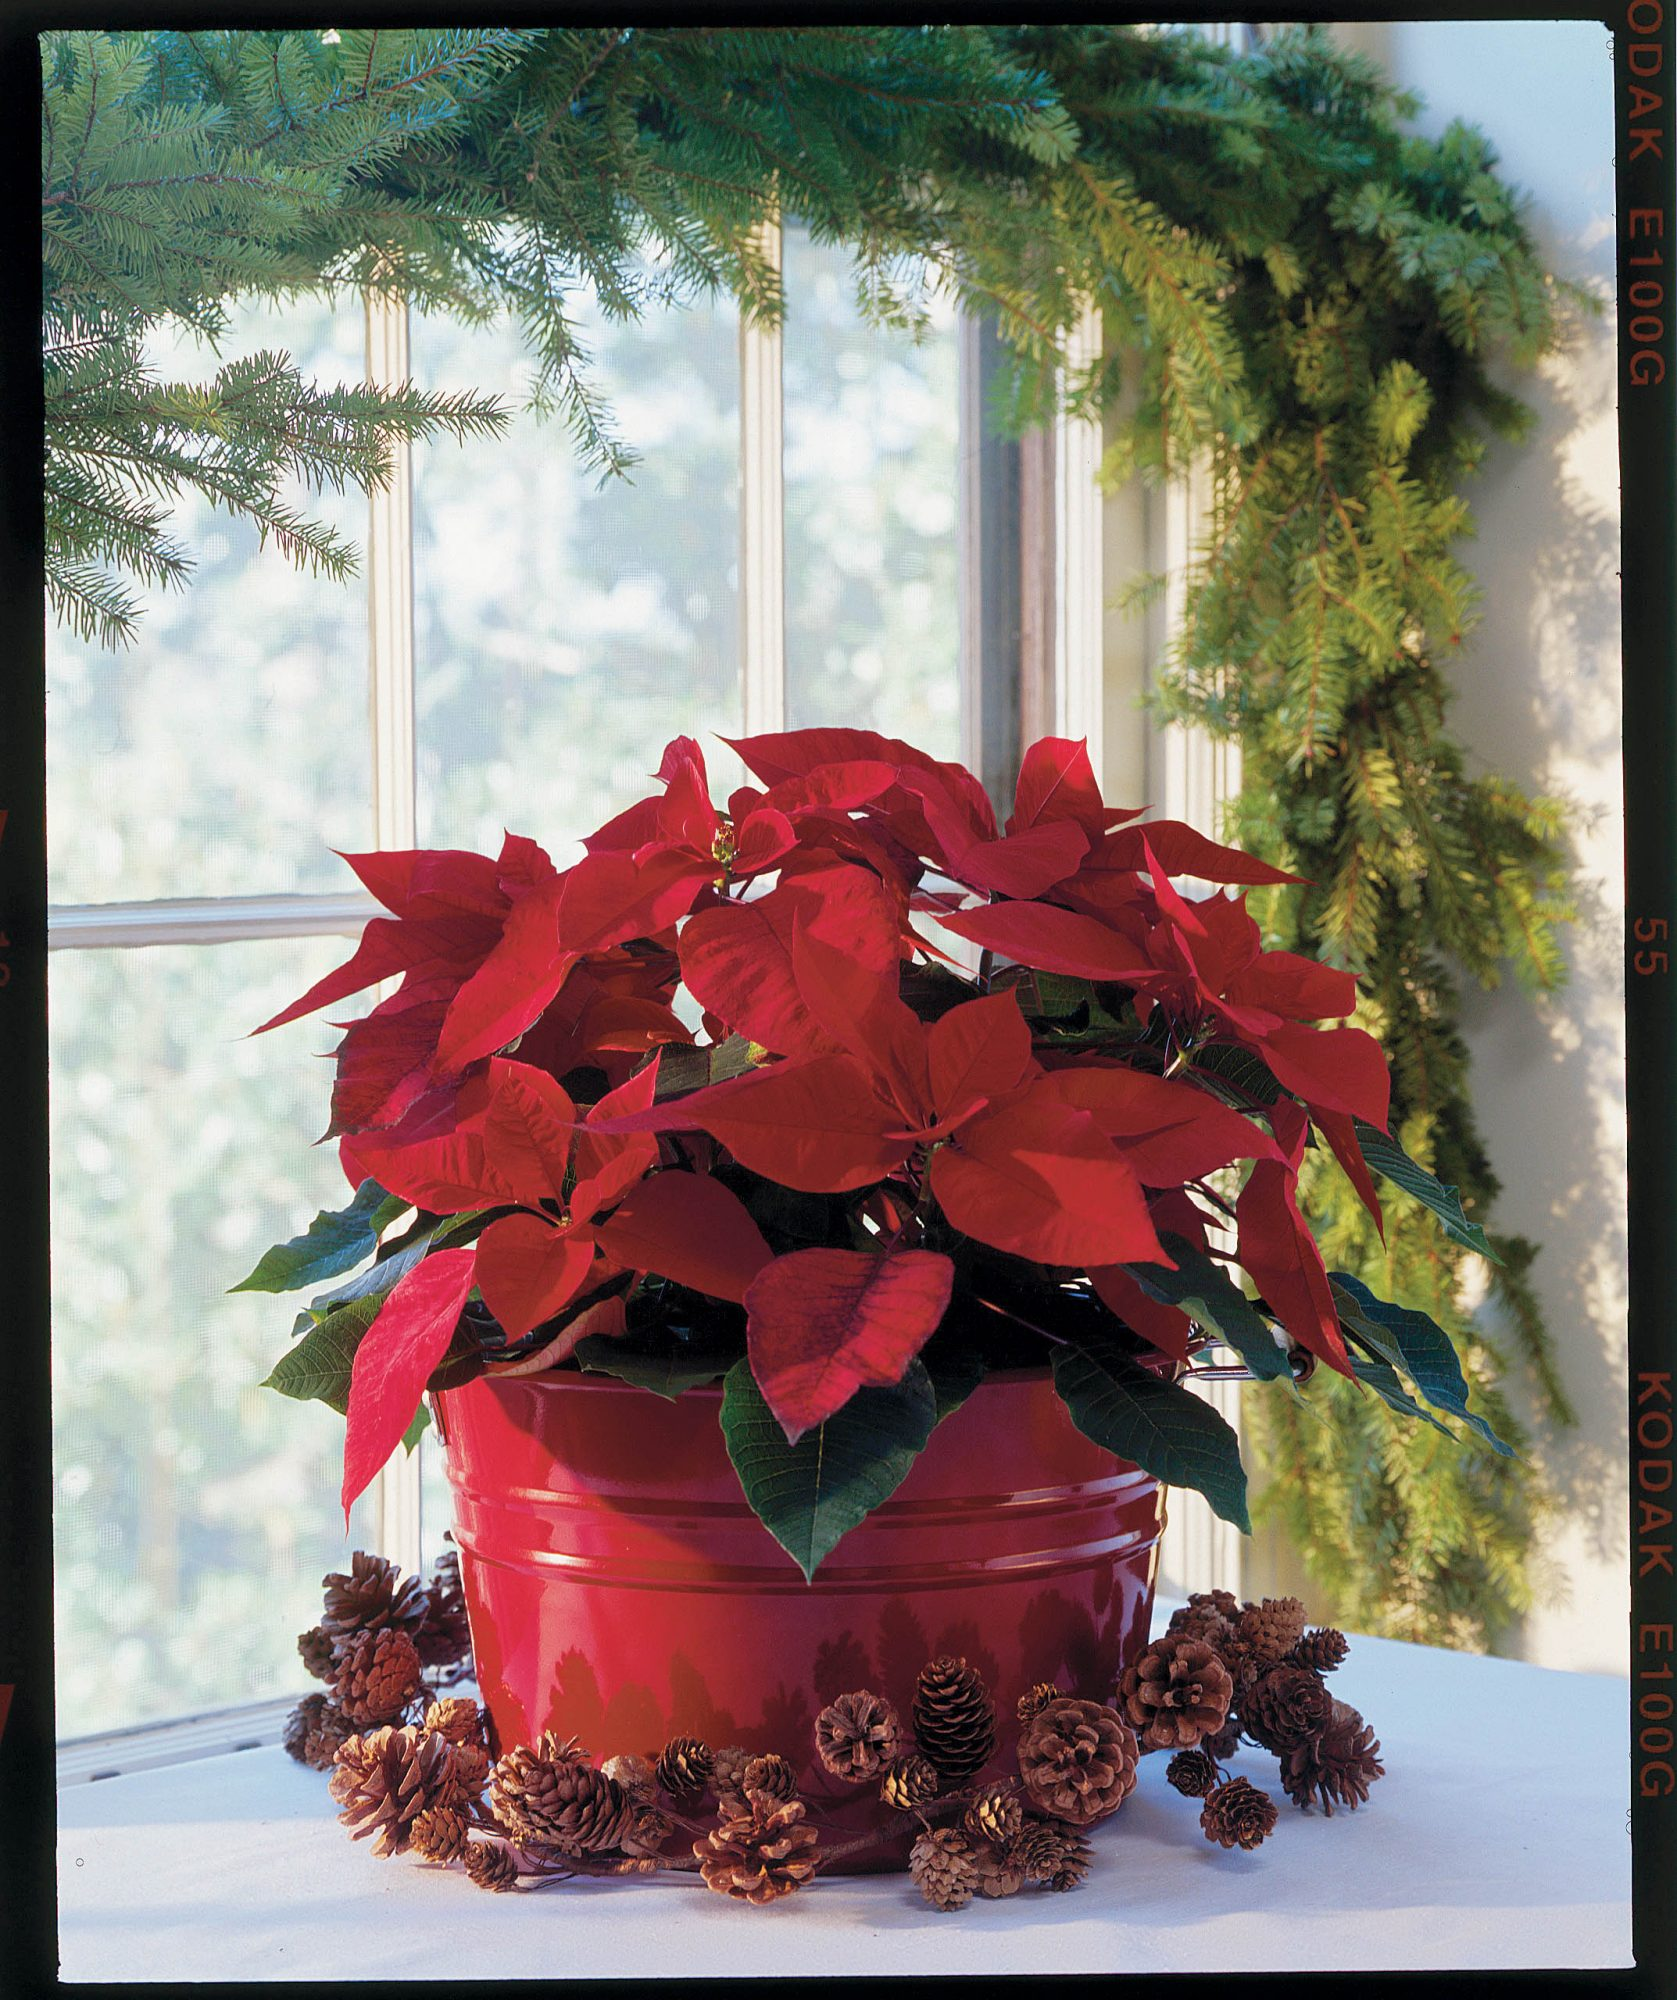 How to Care for Poinsettias this Christmas - Southern Living